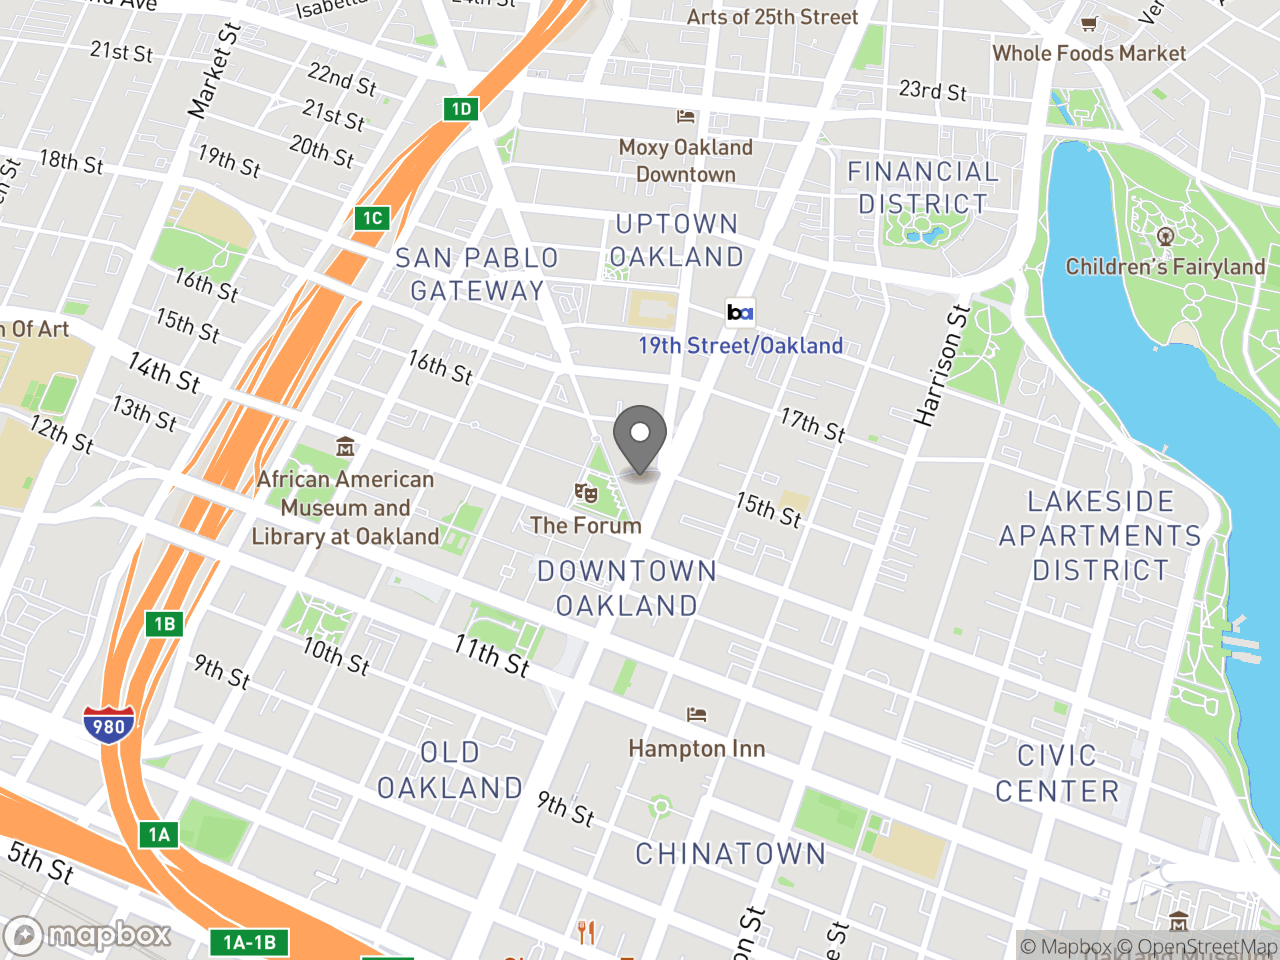 Map image for Fire, located at 150 Frank H. Ogawa Plaza in Oakland, CA 94612